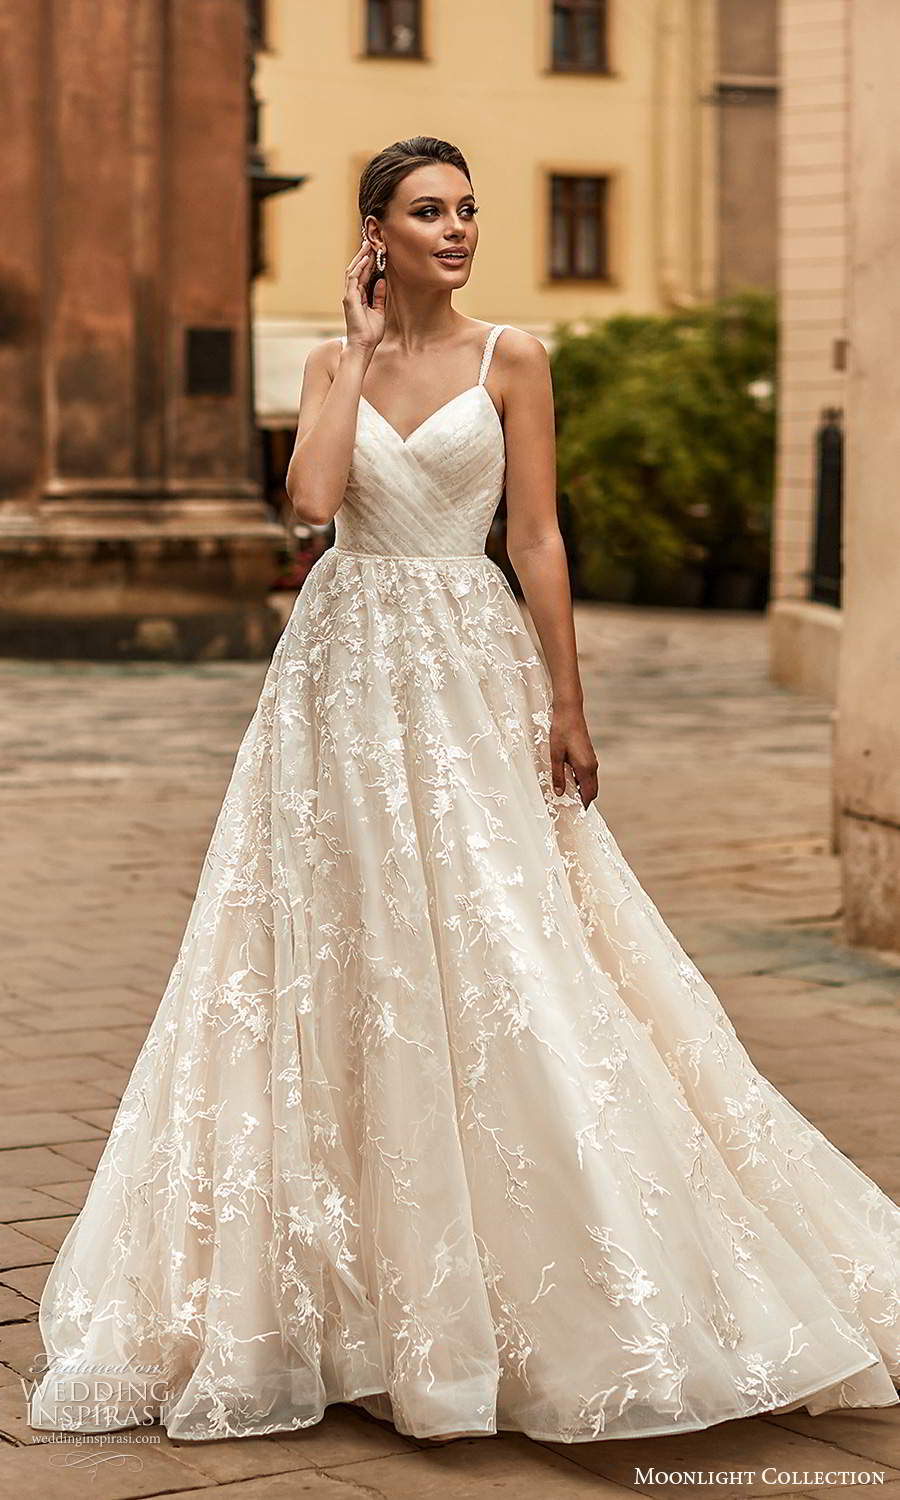 moonlight collection spring 2021 bridal sleeveless straps v neckline ruched bodice a line ball gown wedding dress chapel train (6) mv